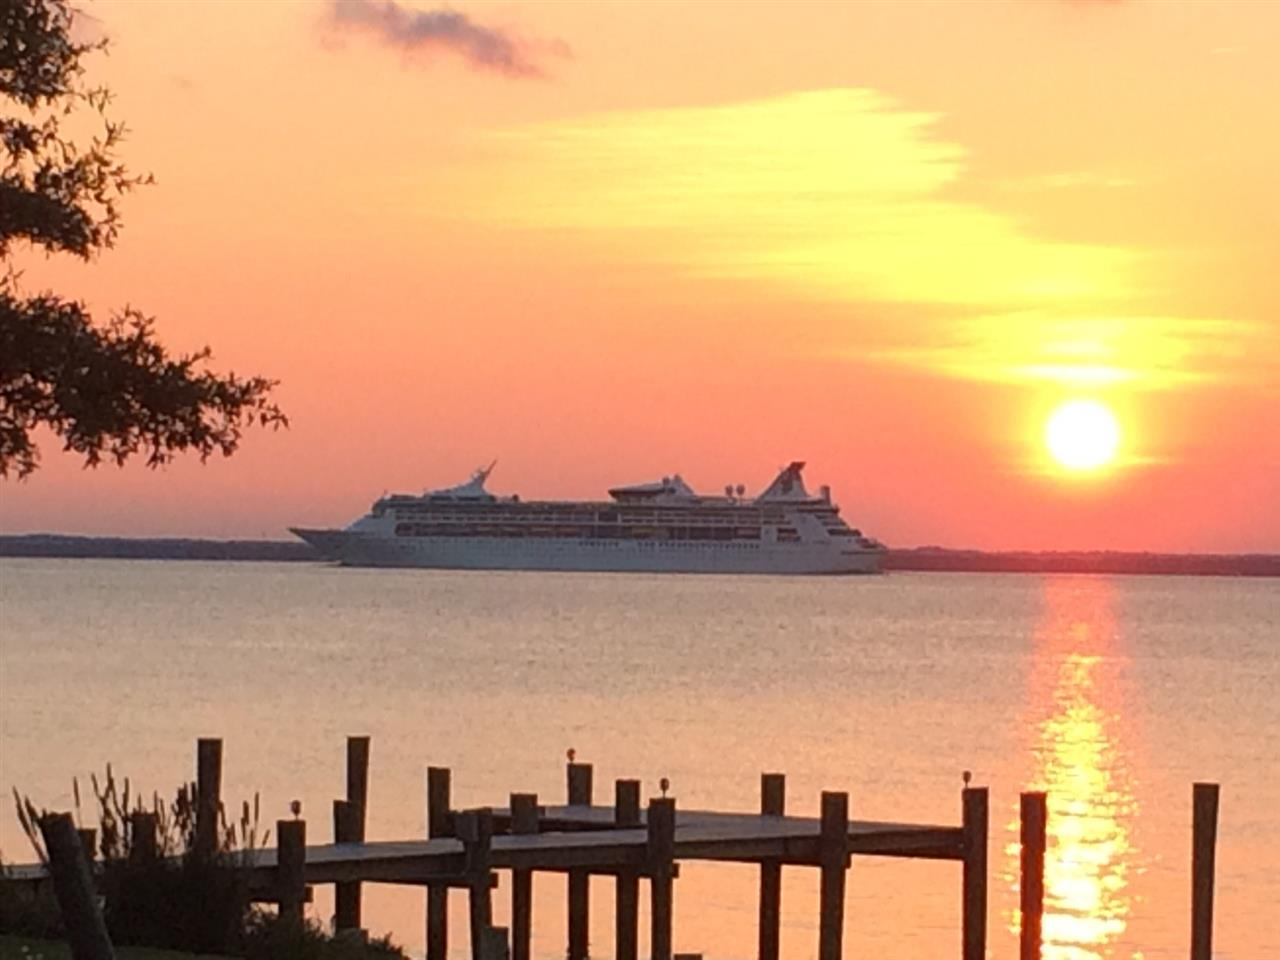 Cruise Ship from Baltimore, MD to Nassau